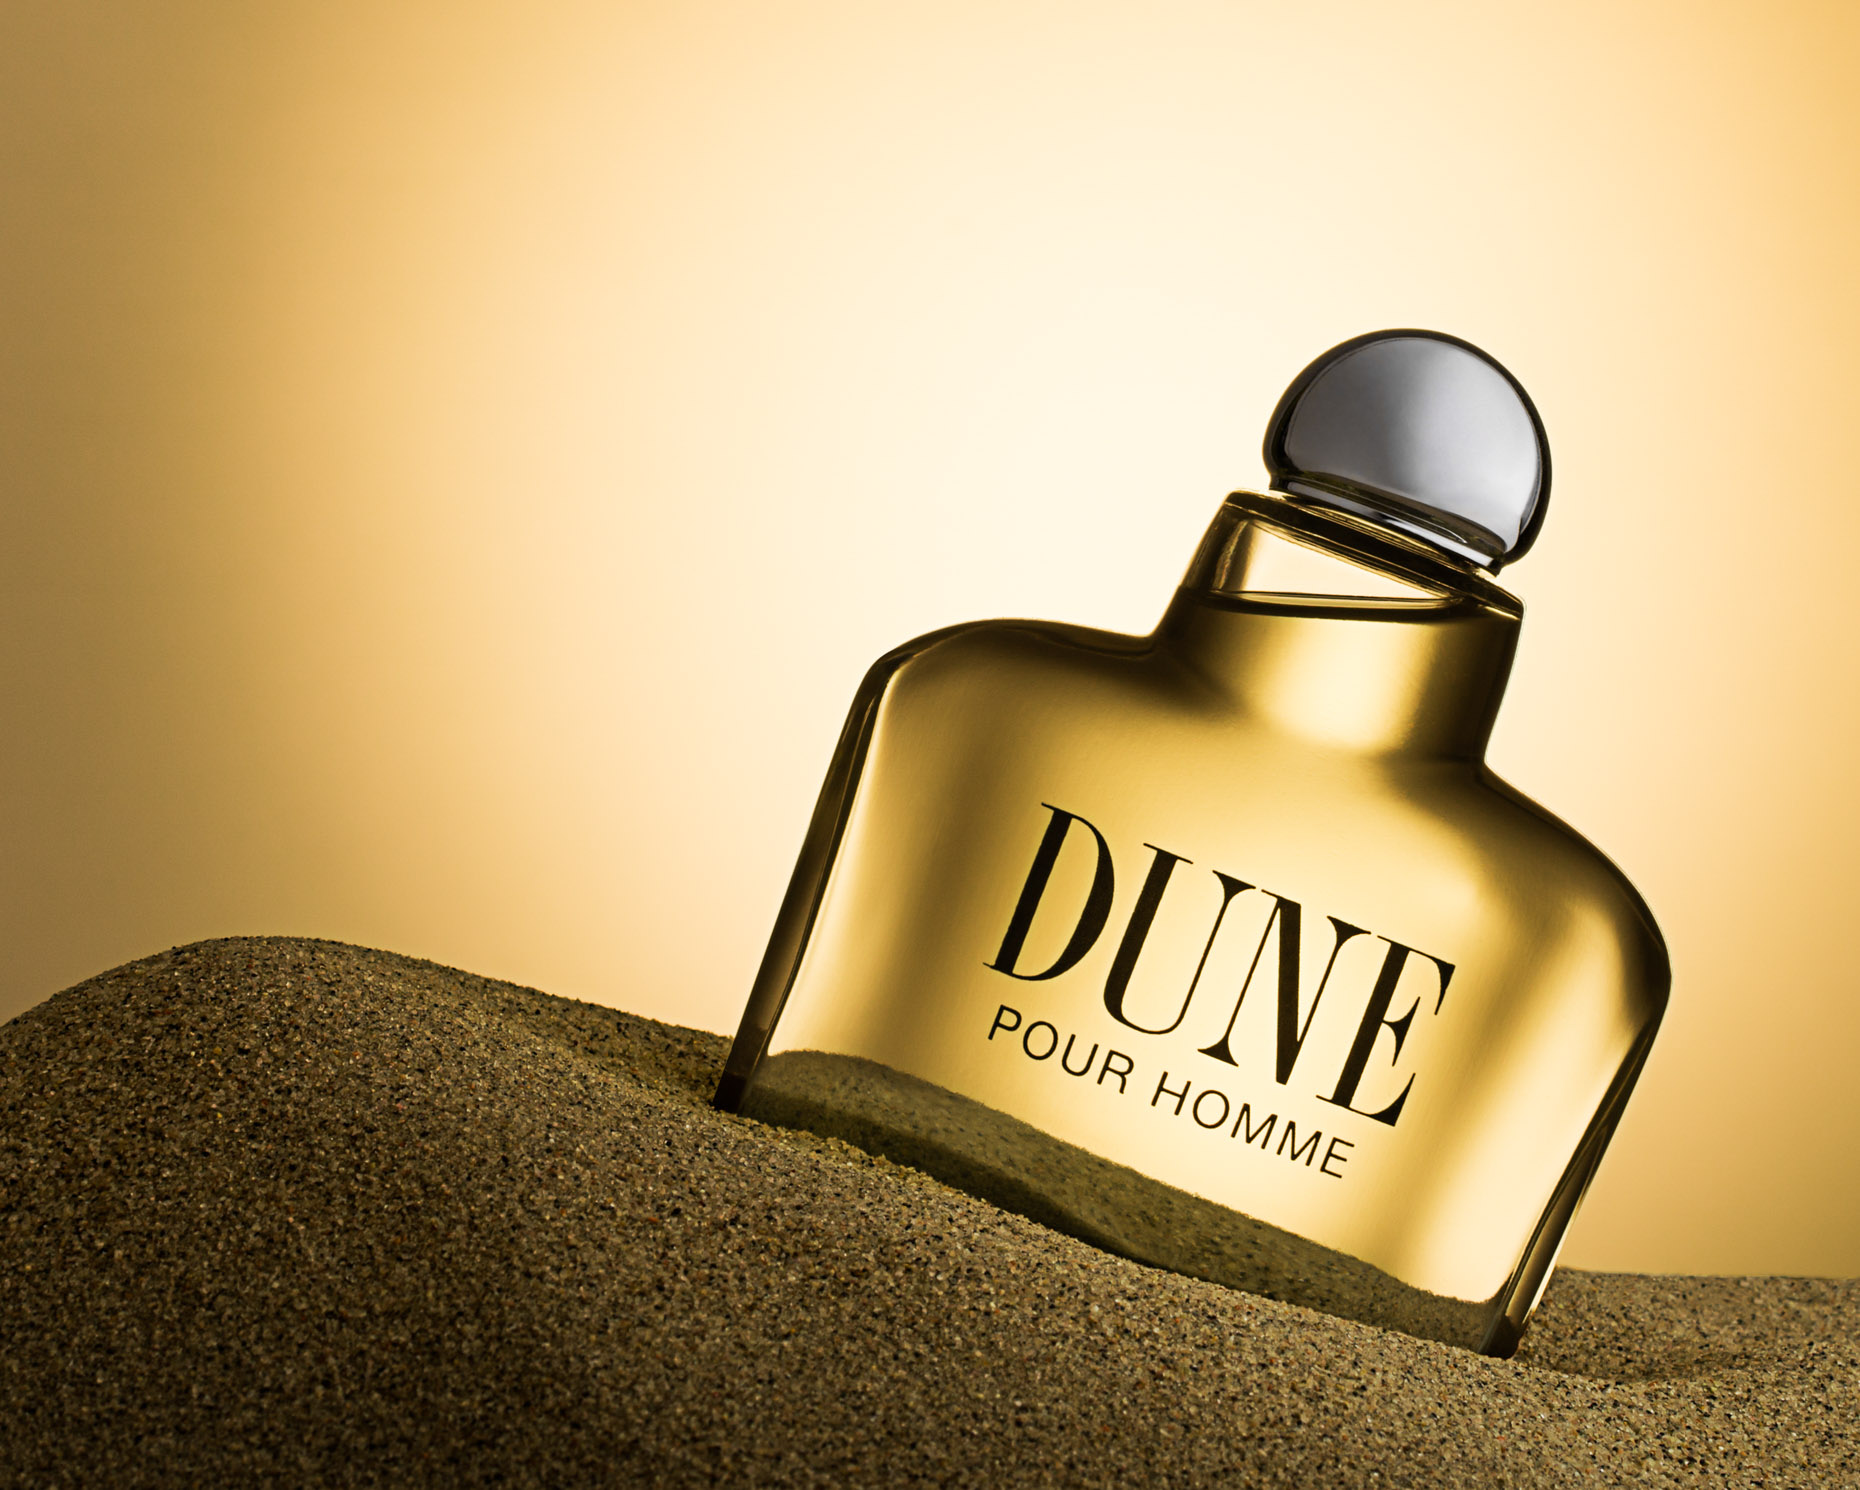 Fragrance Dune Pour Homme - Christophe Benard Photography - Edmonton Commercial Photographer, Edmonton Commercial Photography, Edmonton Product Photographer, Edmonton Product Photography, Still Life Photographer in Canada, Product Photographer in Canada